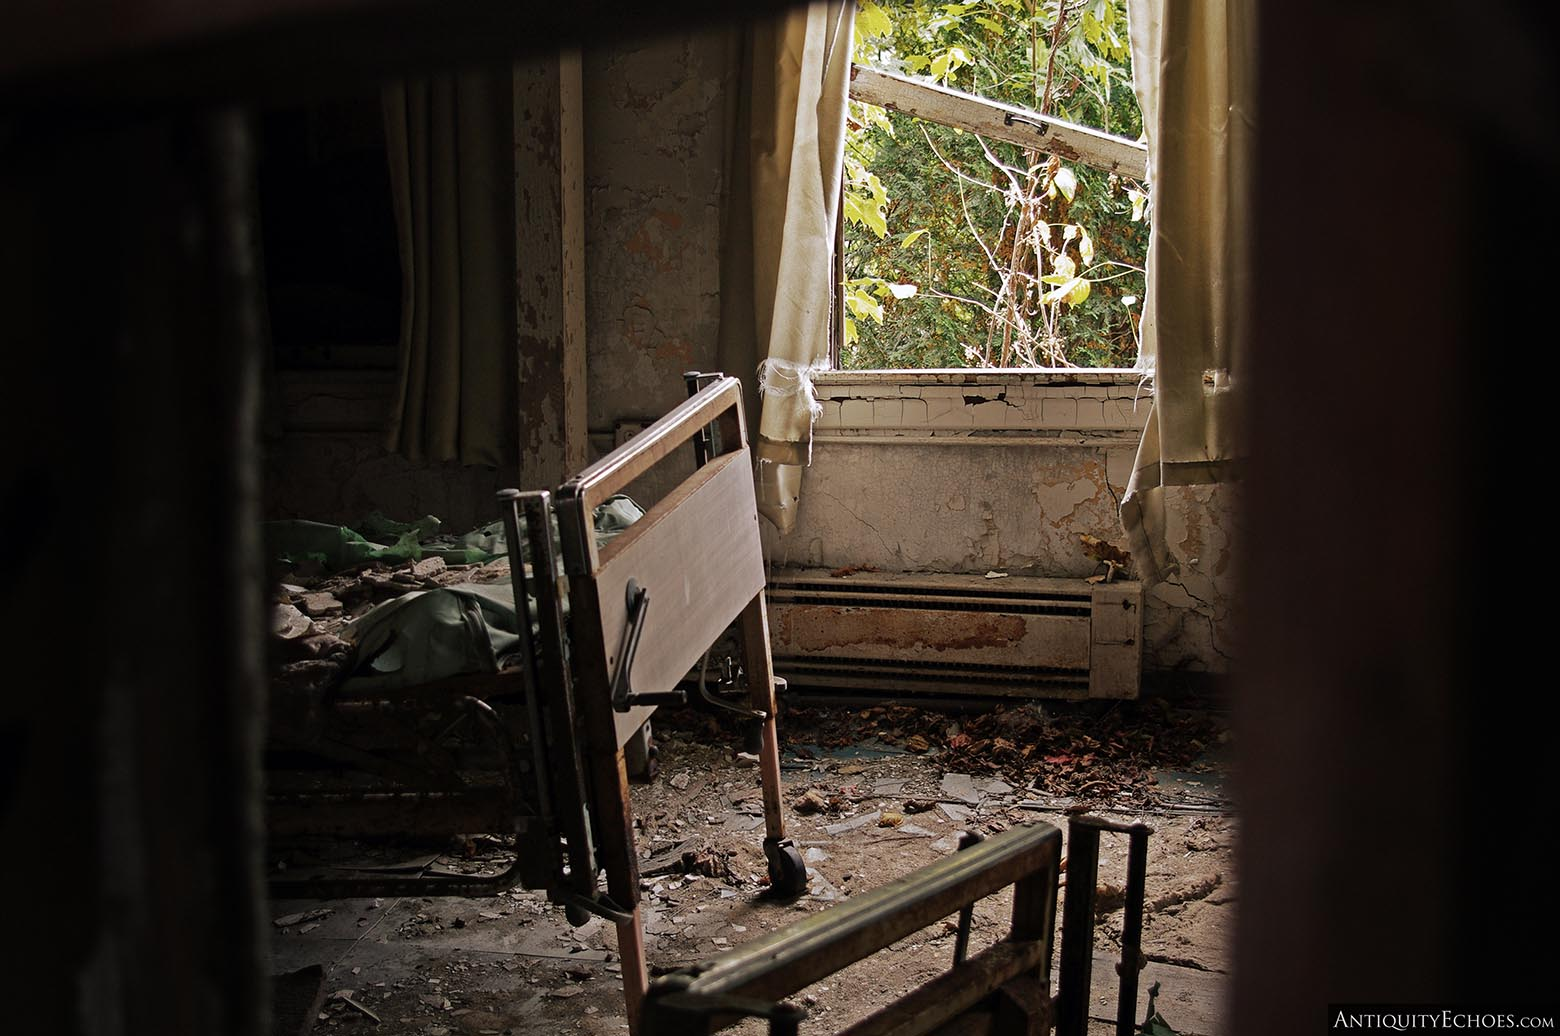 Brownsville General Hospital - A Bed Rests in Shadow